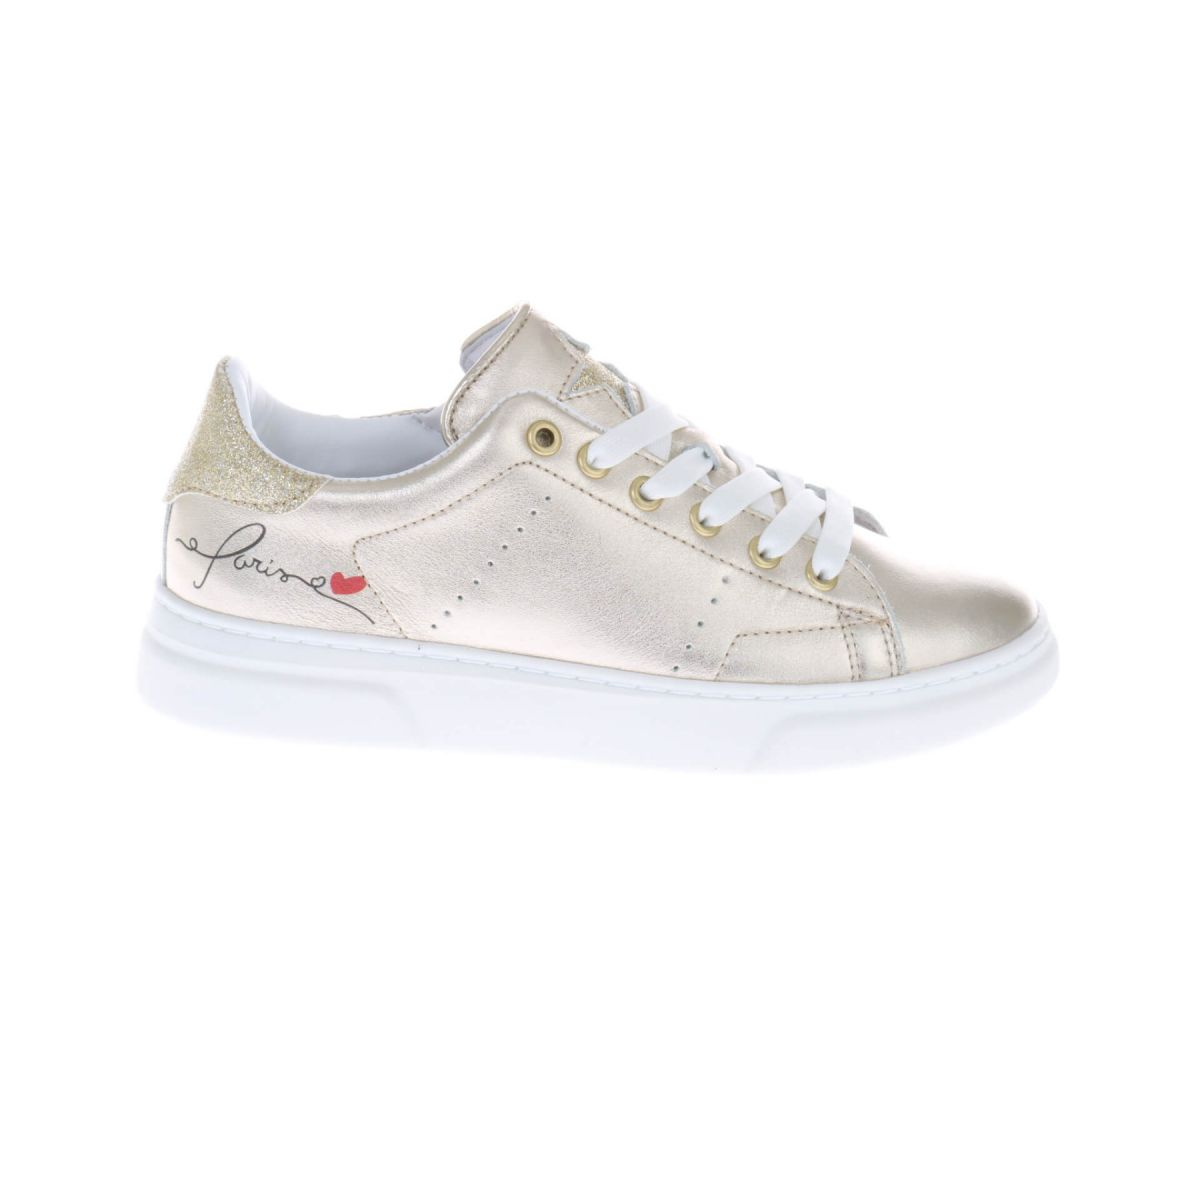 HIP H1279 Paris Sneakers Goud Metallic